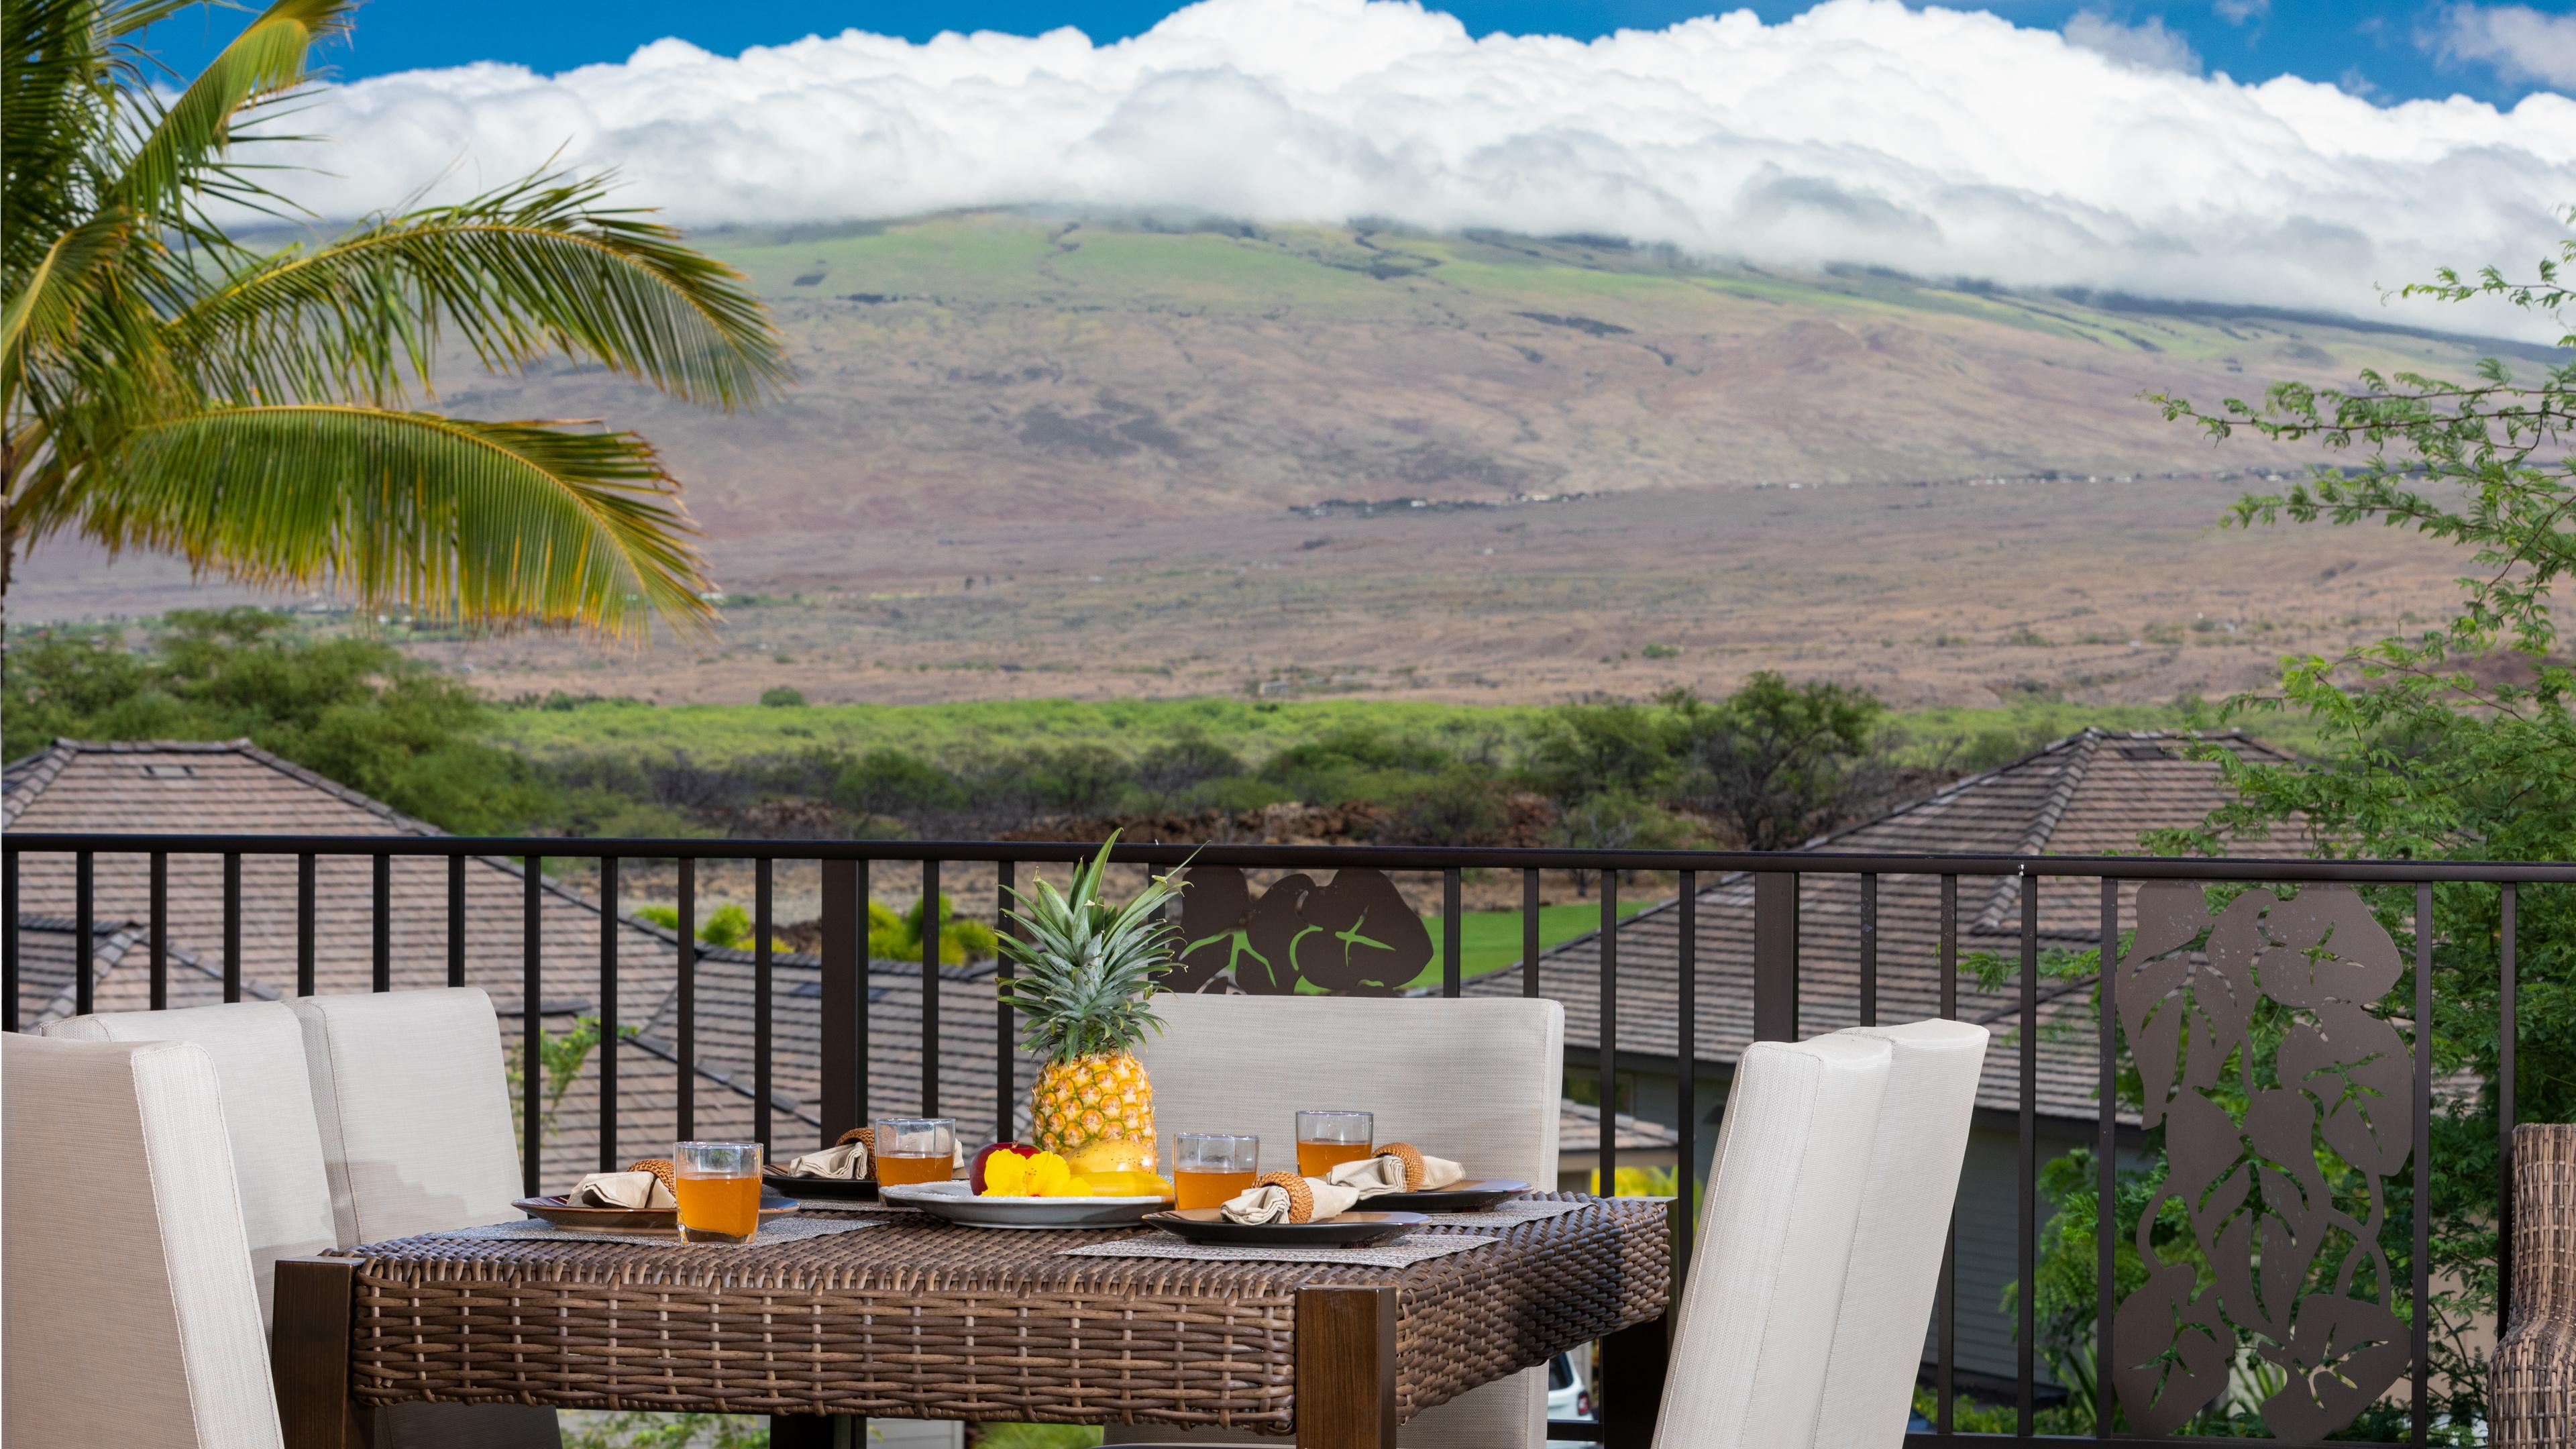 Welcome to Kohala View - Large new 4Bedroom KaMilo home with stunning views of Kohala Mountain.